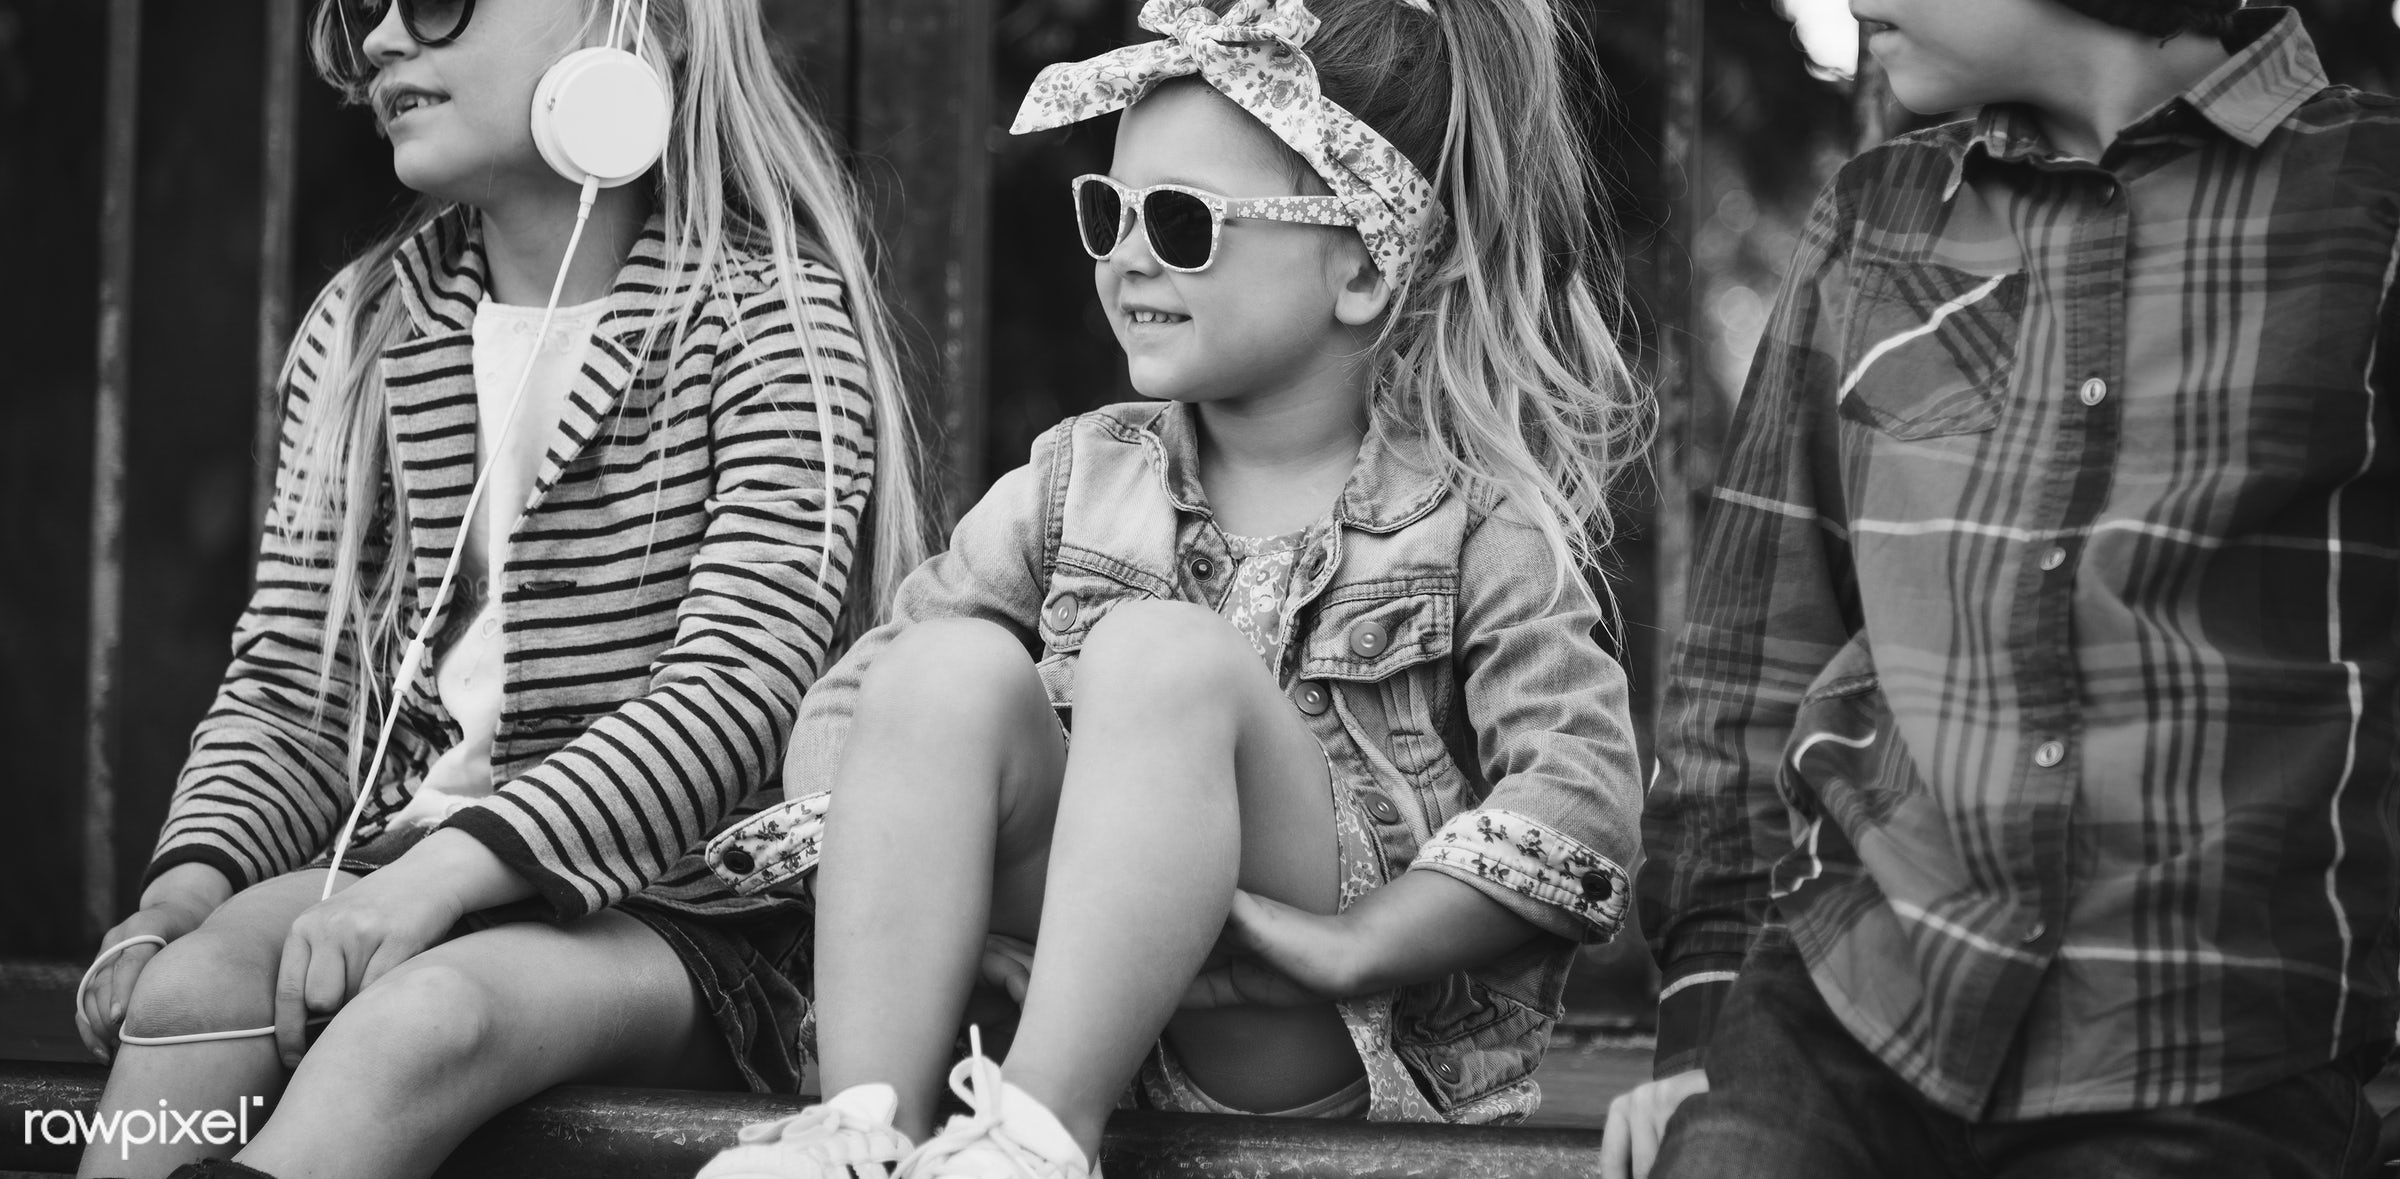 adorable, brother, casual, caucasian, cheerful, chic, child, childhood, children, cute, diversity, elementary age, ethnicity...